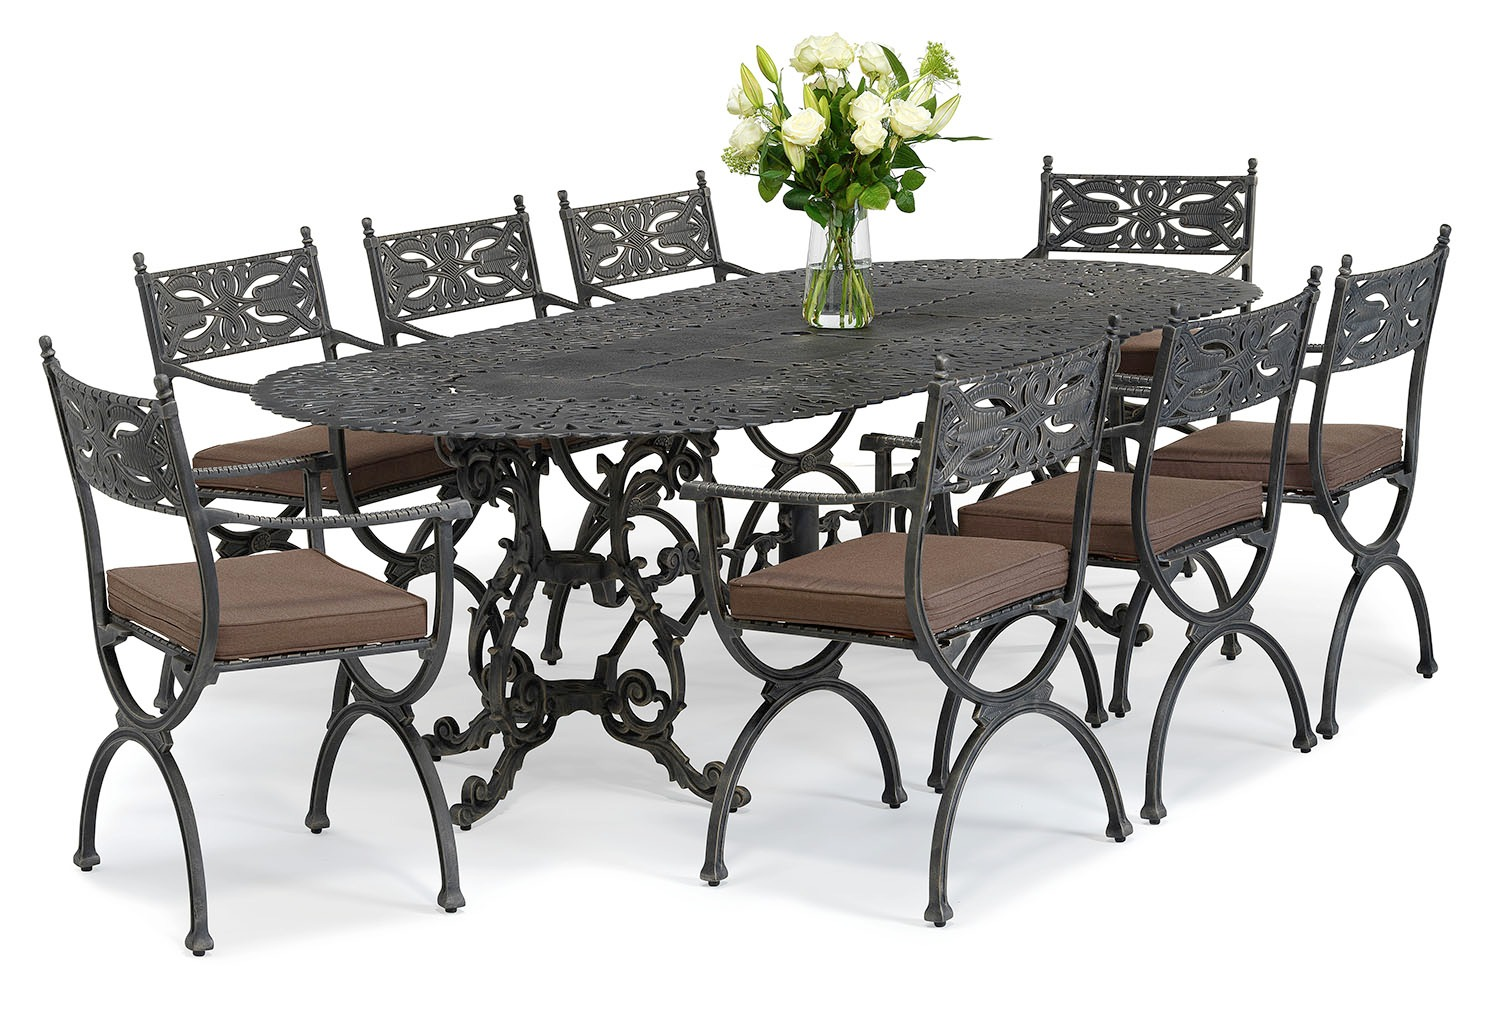 Brownian metal outdoor dining table